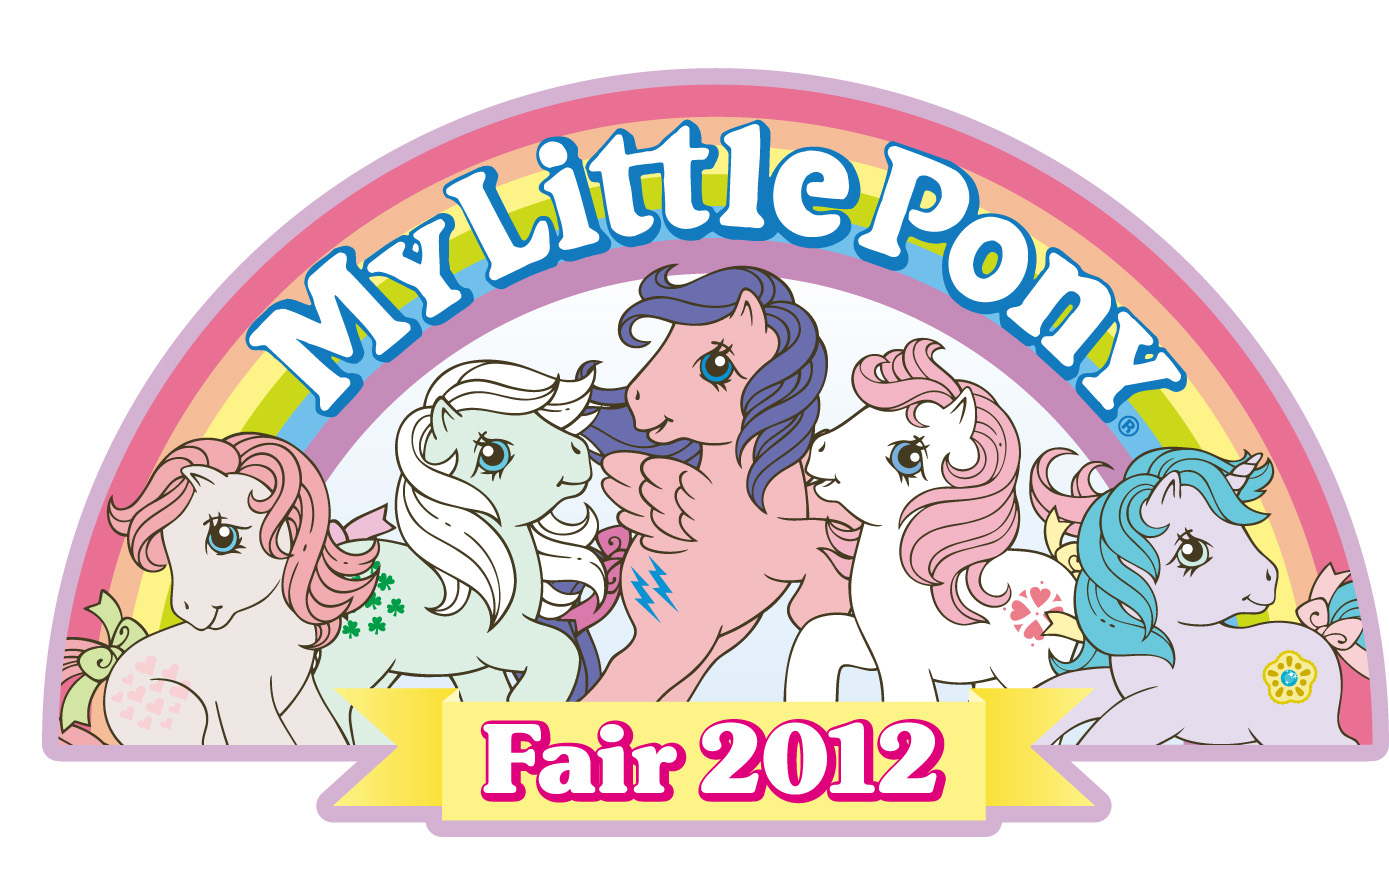 The logo for the 2012 My Little Pony Fair recalls vintage '80s advertising.